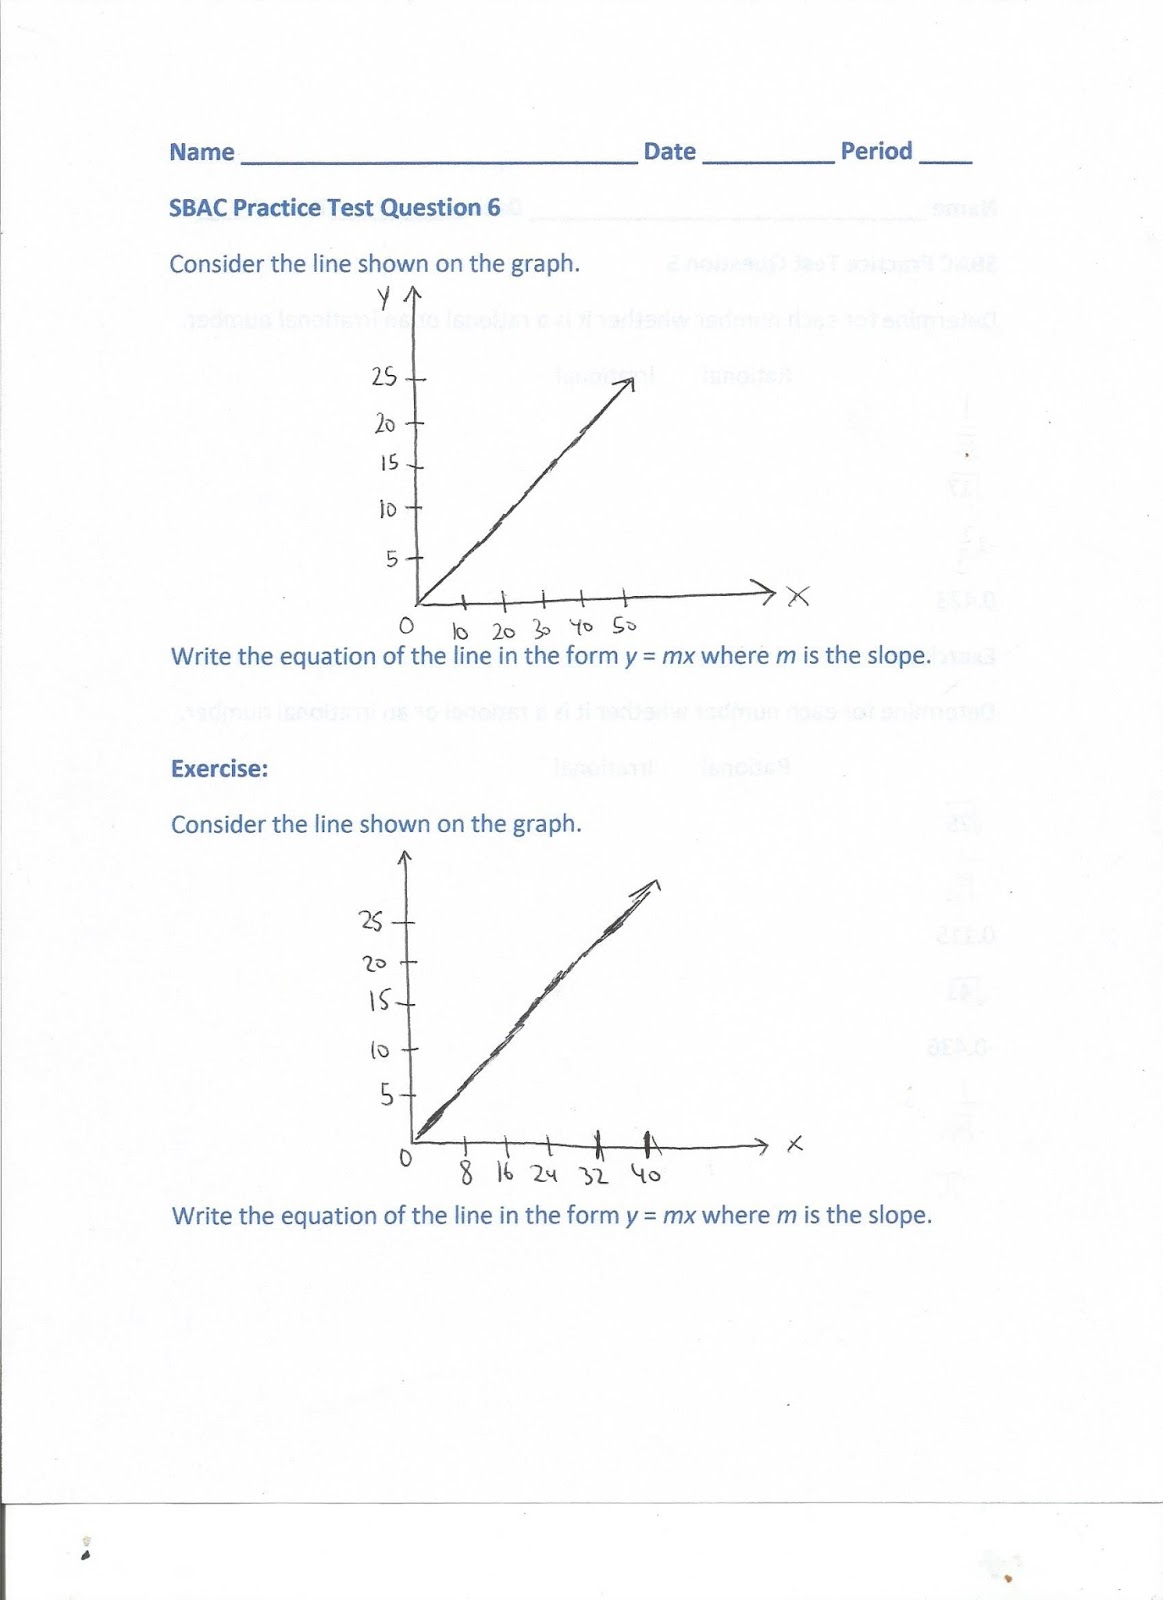 Geometry Common Core Style Sbac Practice Test Questions 5 6 Day 164